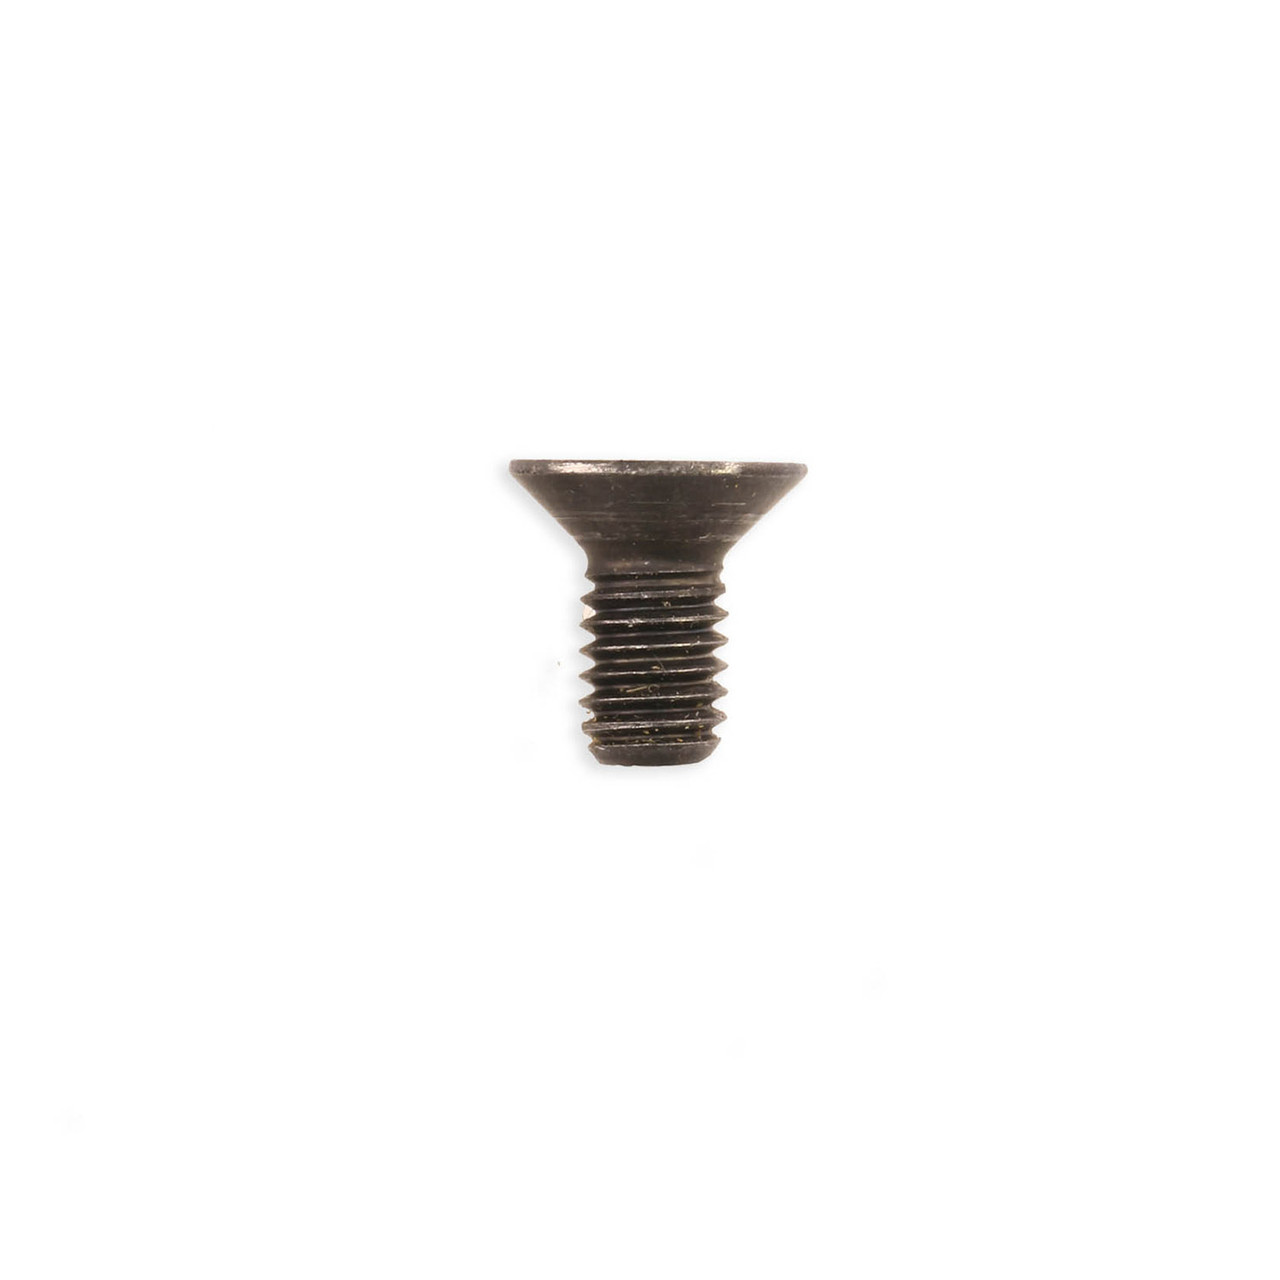 Hurricane Replacement Screw for Standard and Large Dovetail Jaws